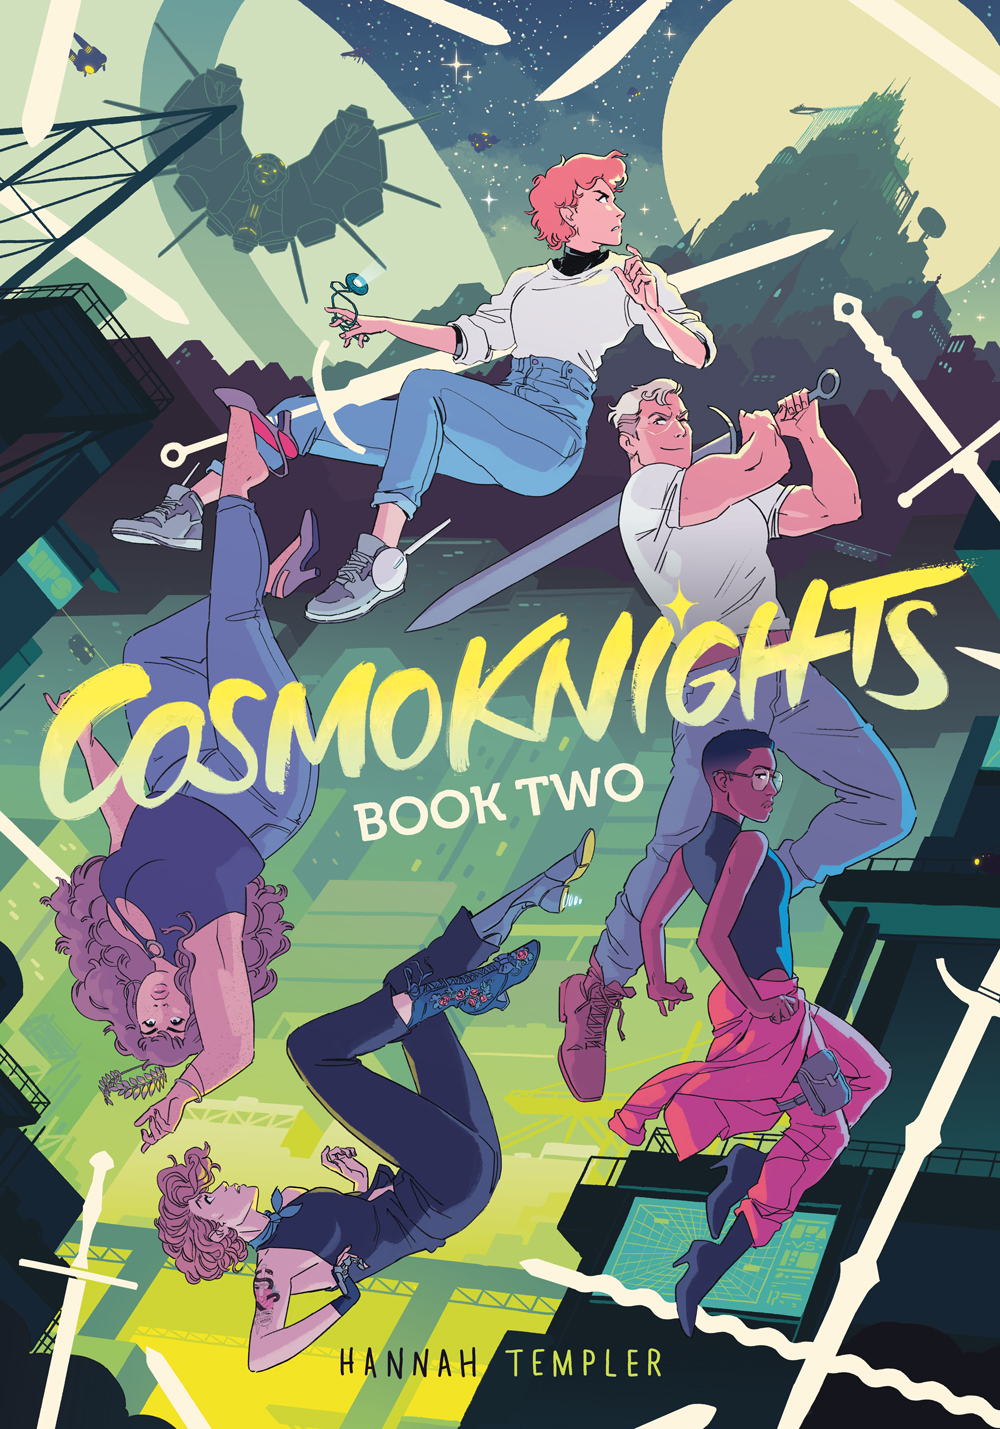 Cosmoknights Book Two Cover. Title: Cosmoknights Book Two. Byline: Hannah Templer. Five women fall through the air, surrounded by falling swords. The first woman is white, young, and dressed casually, with pink hair. She is looking up at a castle in the distance, and holding a glowing locket in her right hand. The second woman is white and muscular, with cropped blonde hair, and is holding a sword over her shoulder and grinning. The third woman is Black, with a TWA fade haircut, and is wearing pink overalls and black high heels, looking doubtfully over her shoulder. The fourth woman is white, and has a snake tattoo on her shoulder. She also has a metal prosthetic leg with a glowing cybernetic high-heel. The final, fifth woman is of Korean descent, and is falling upside down, a crown of golden leaves falling from her head. She has long flowing hair and is wearing high heels and casual clothes. The background is full of spaceships, stars and castles lit with neon lights. A larger spaceship with protruding spikes looms ominously in the sky above a futuristic looking city.